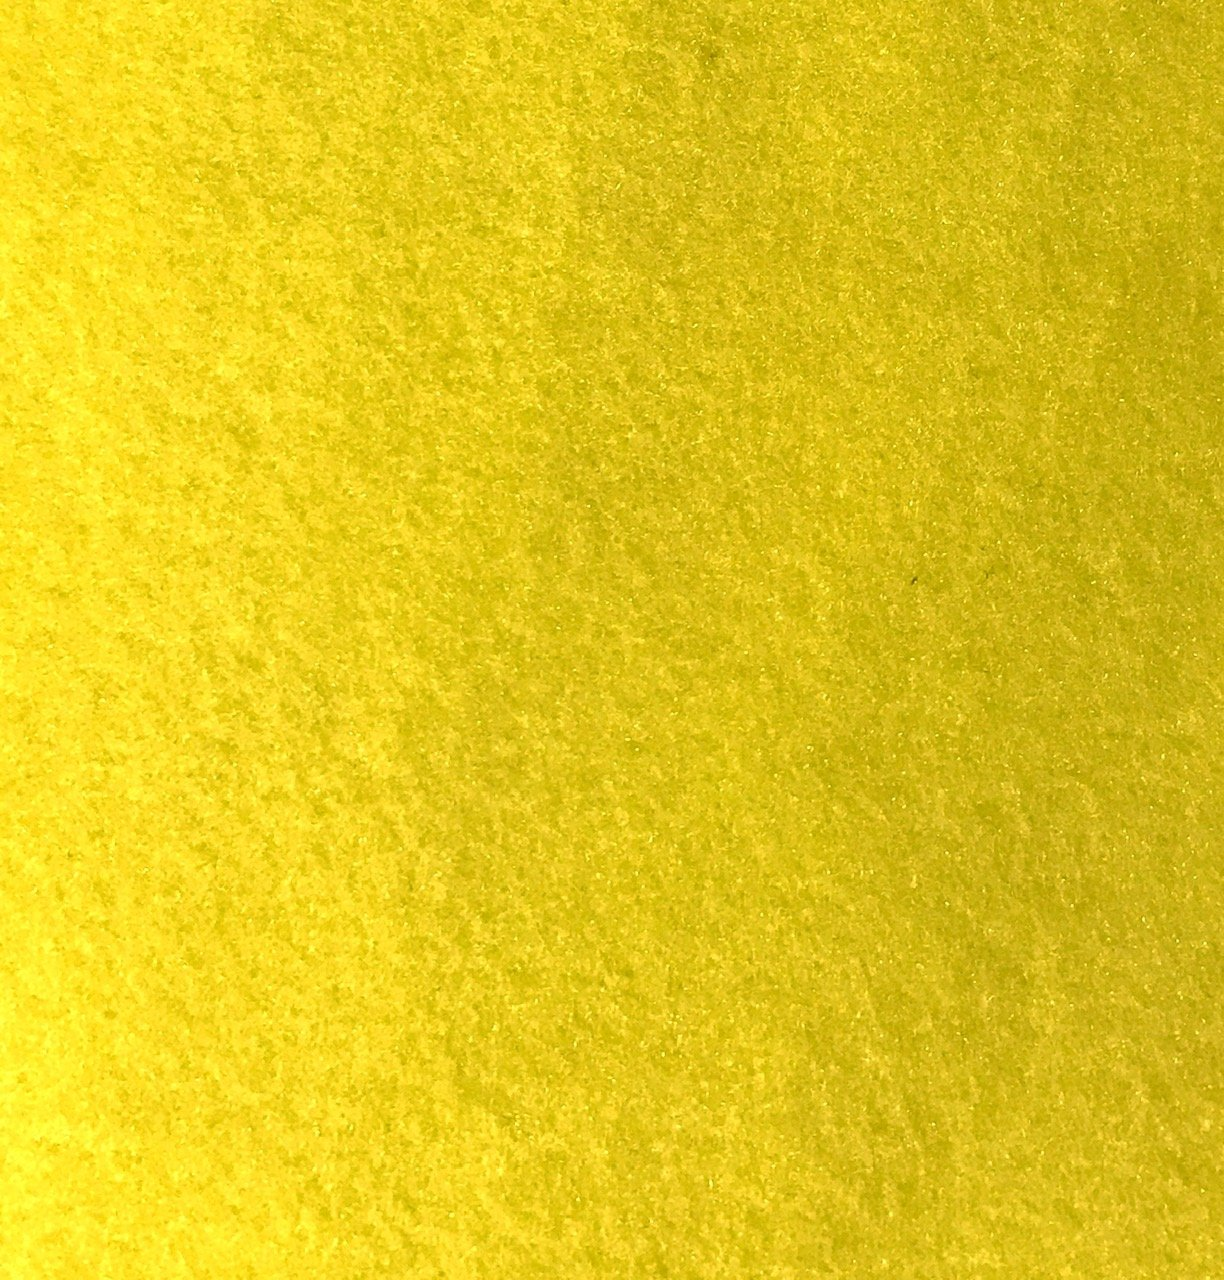 P100 - Safety Yellow